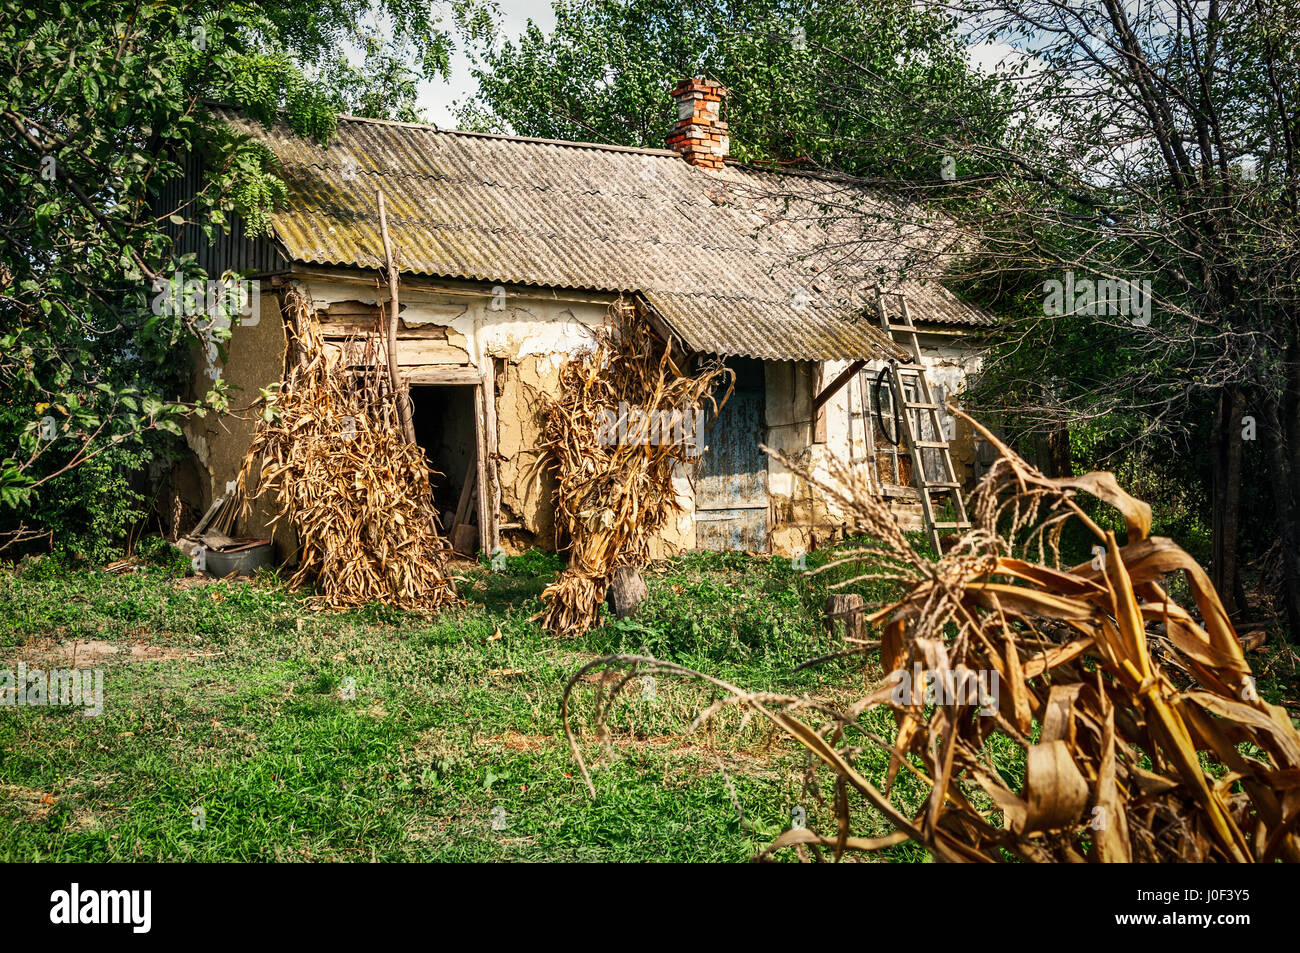 Old village house in forest environment - Stock Image